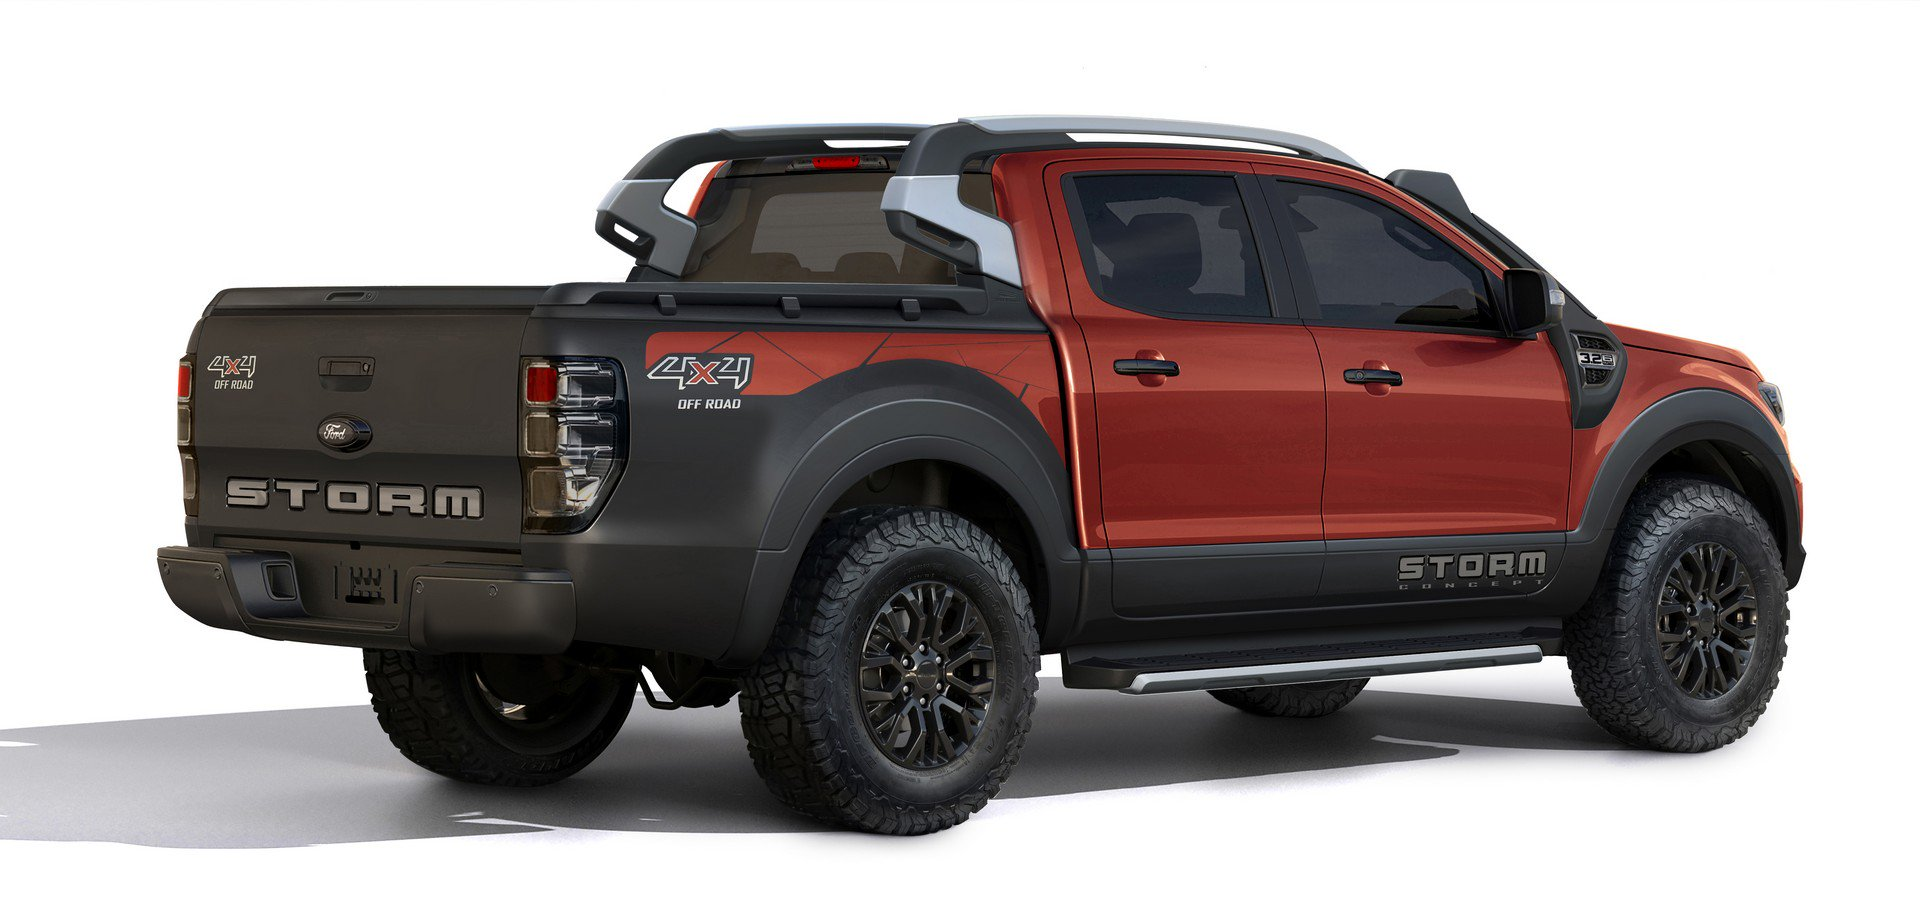 Ford Ranger Storm Concept and Ka Urban Warrior Concept (3)